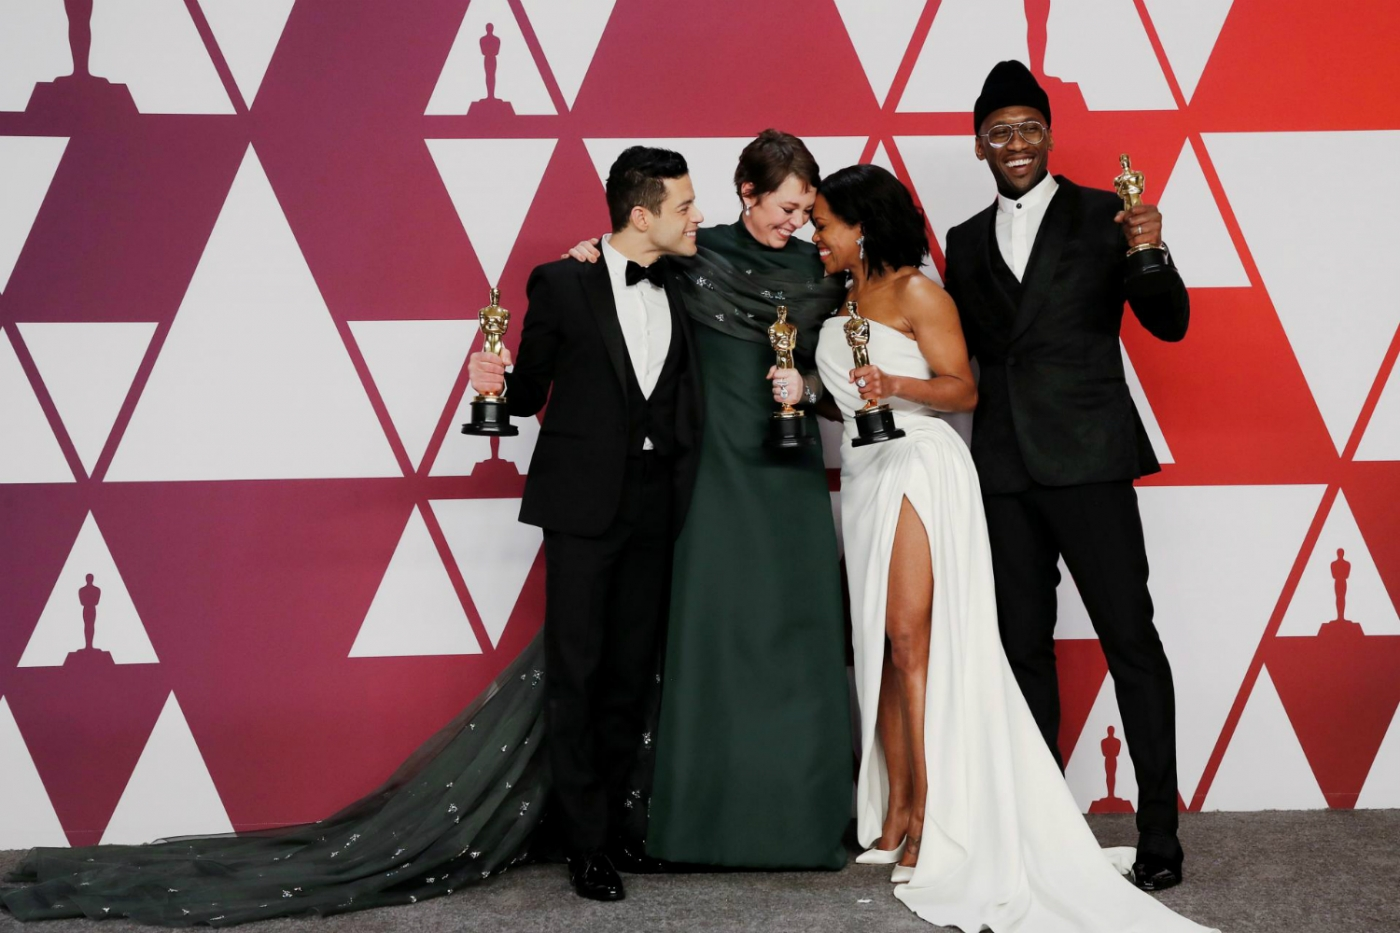 oscars 2019 Oscars 2019 – The Academy Awards' Flair for Fashion and Design feature 2 1 1400x933